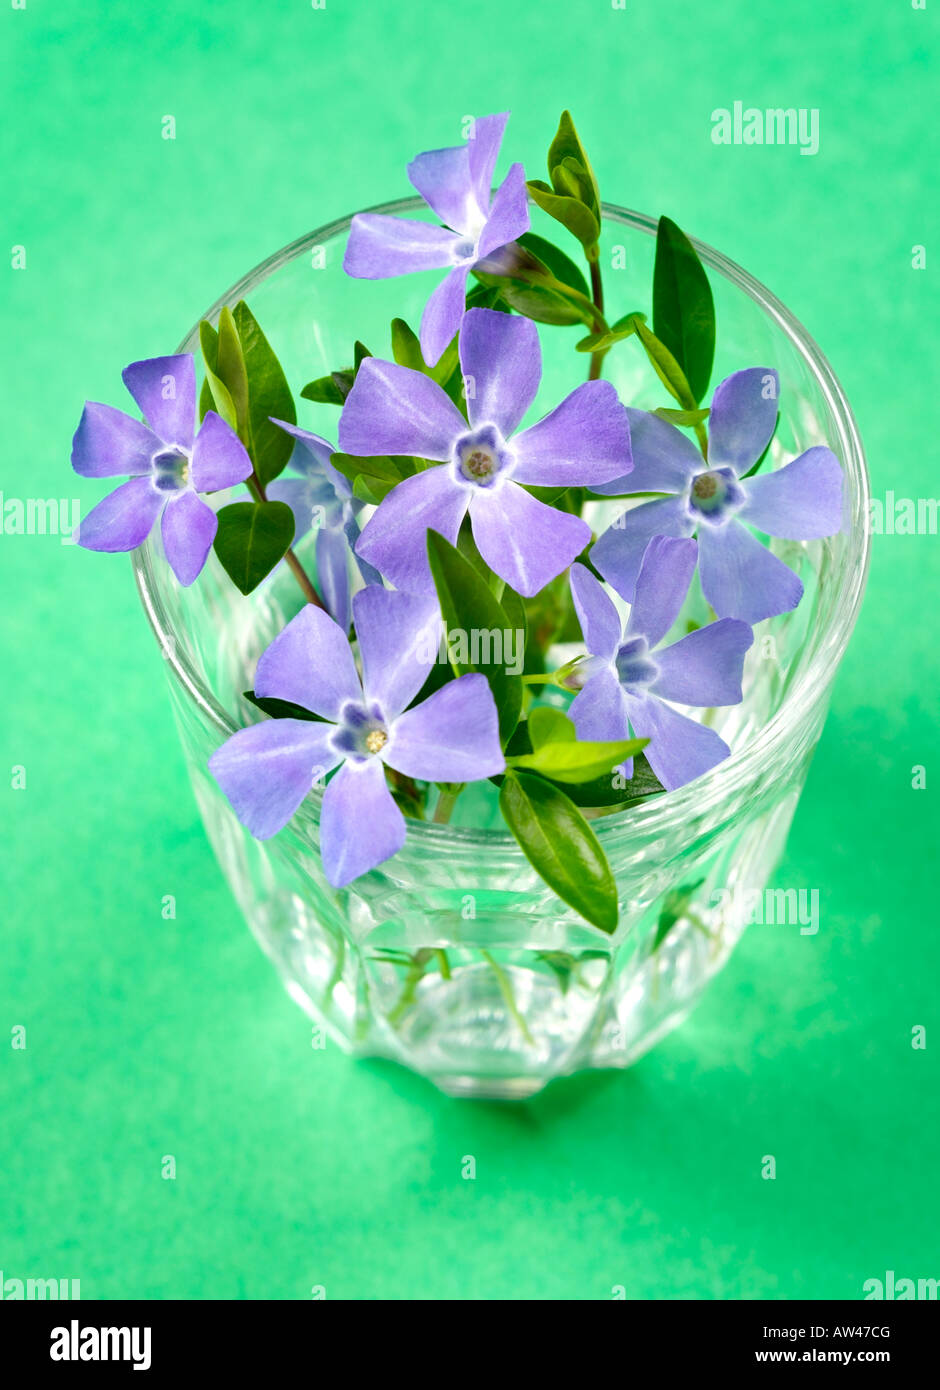 A glass containing periwinkle flowers on a green background. - Stock Image